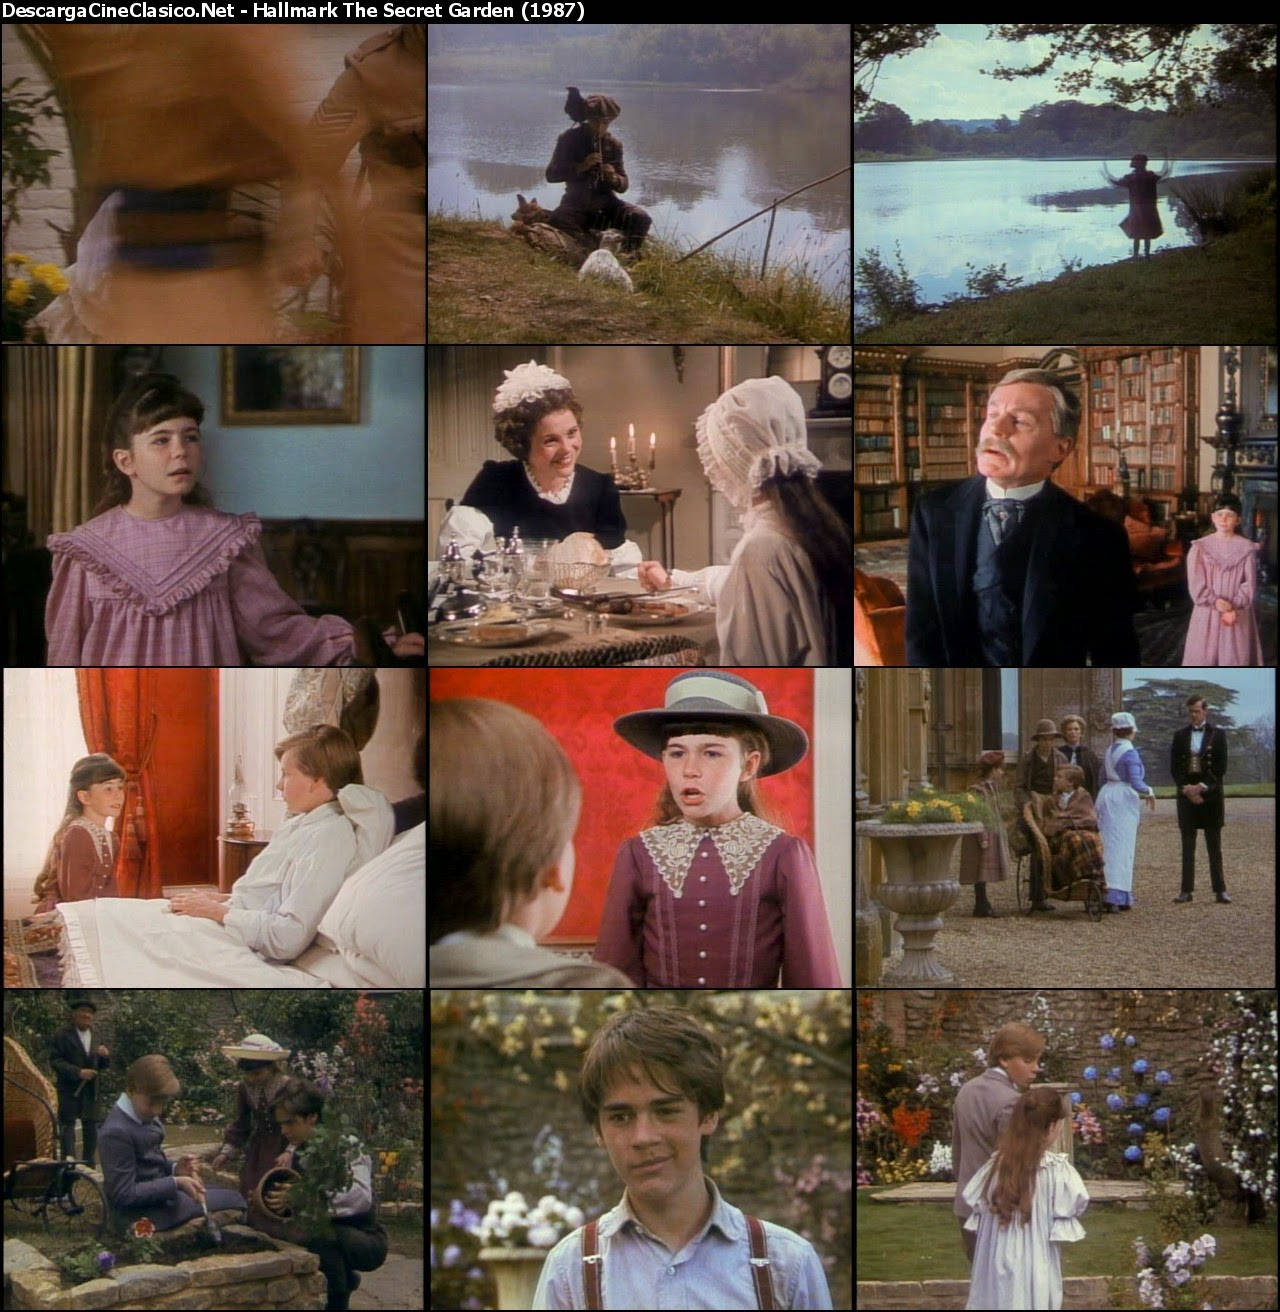 El jardín secreto (TV) (Hallmark Hall of Fame: The Secret Garden, 1987)